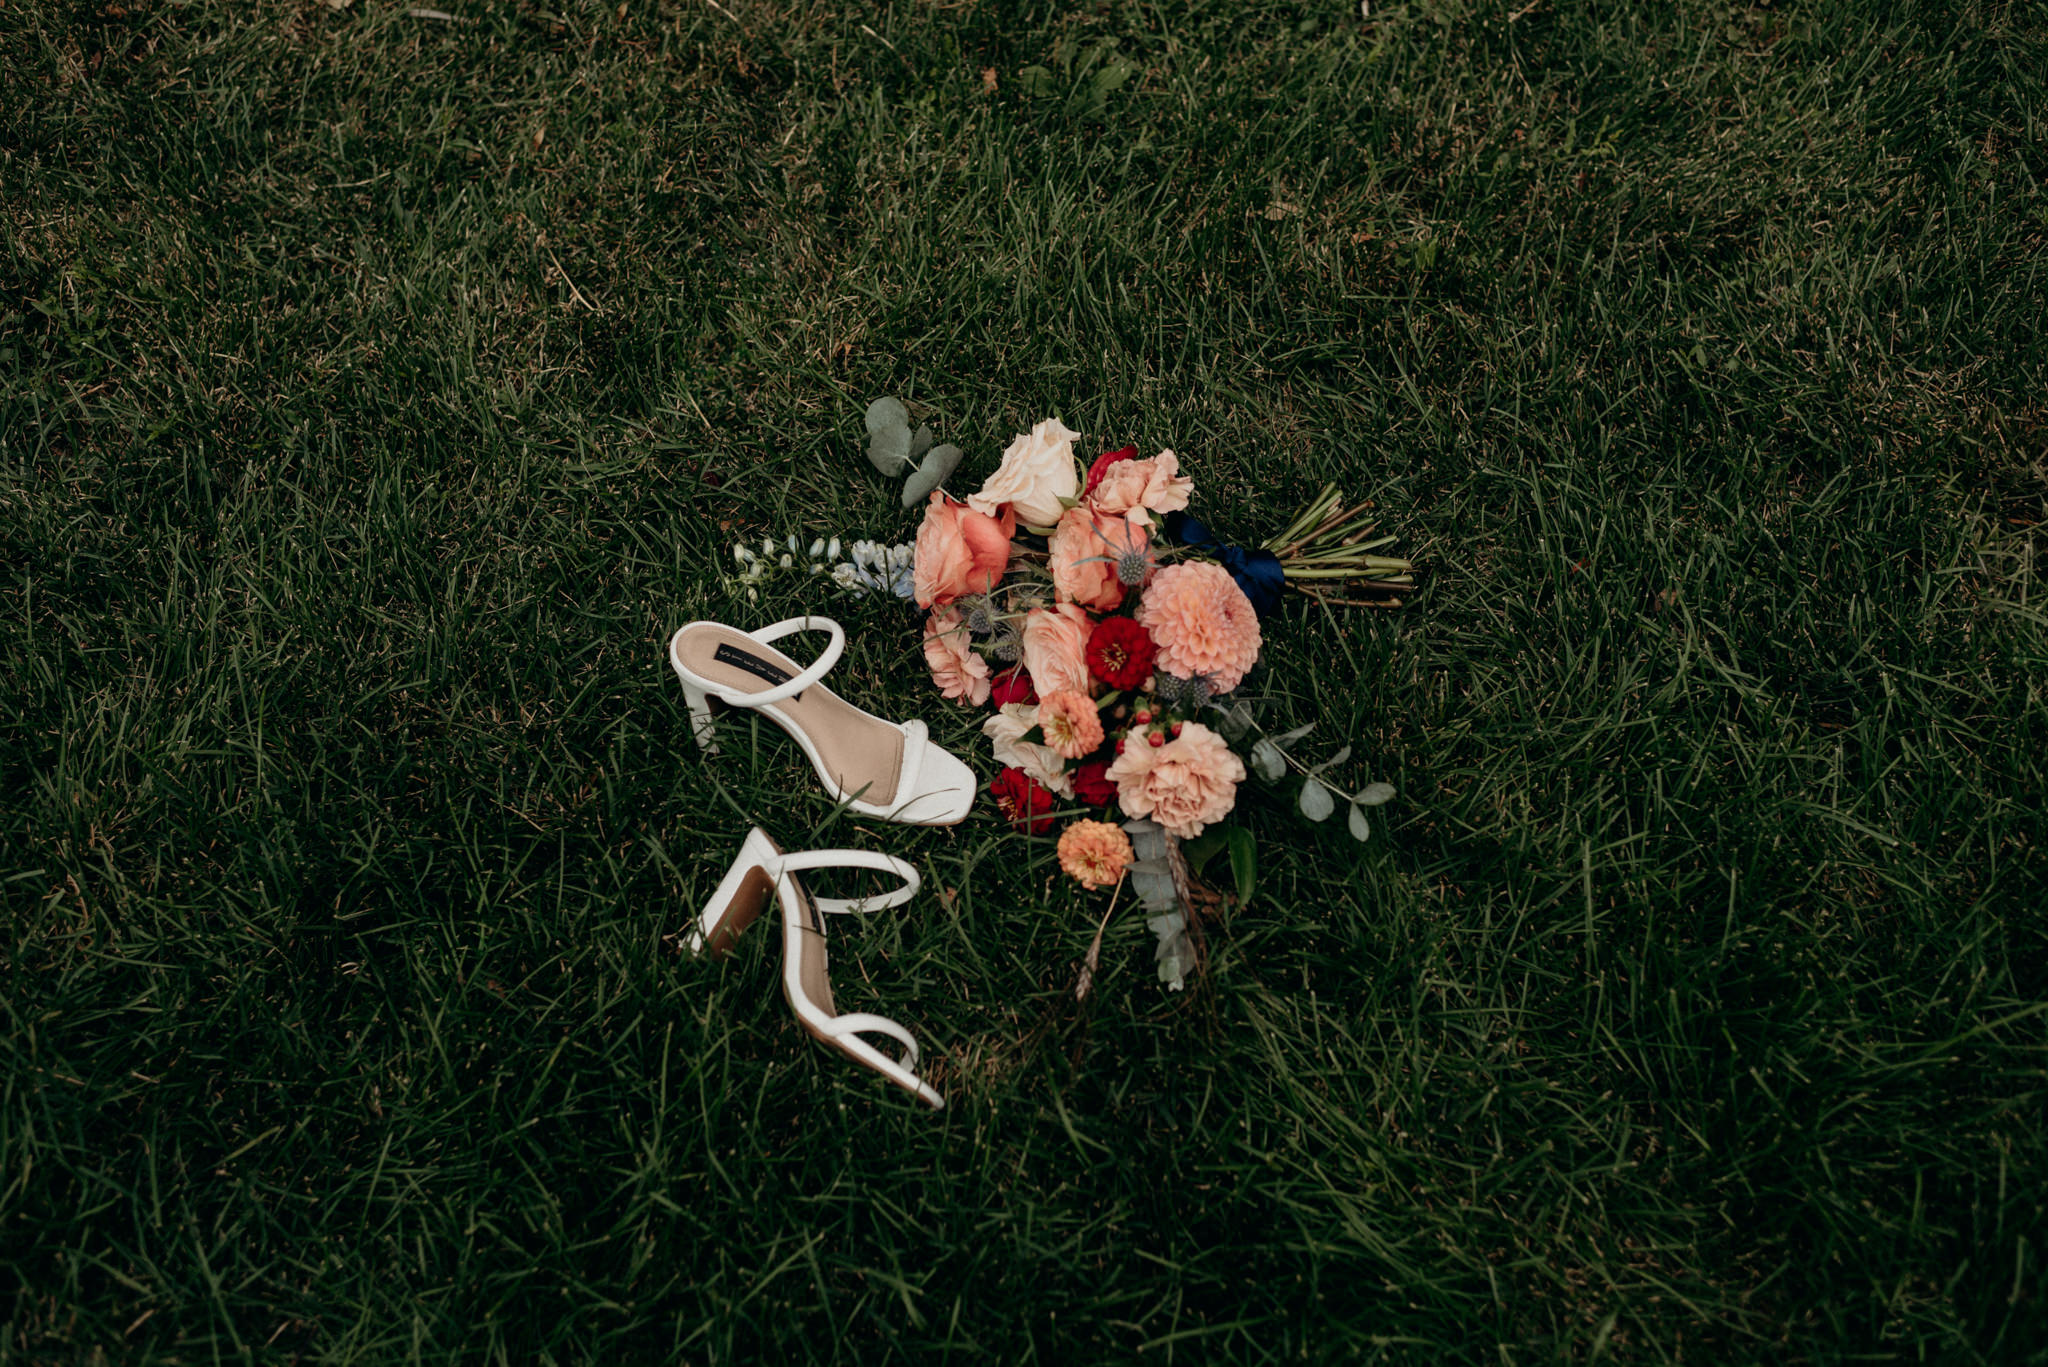 bouquet and shoes on the grass